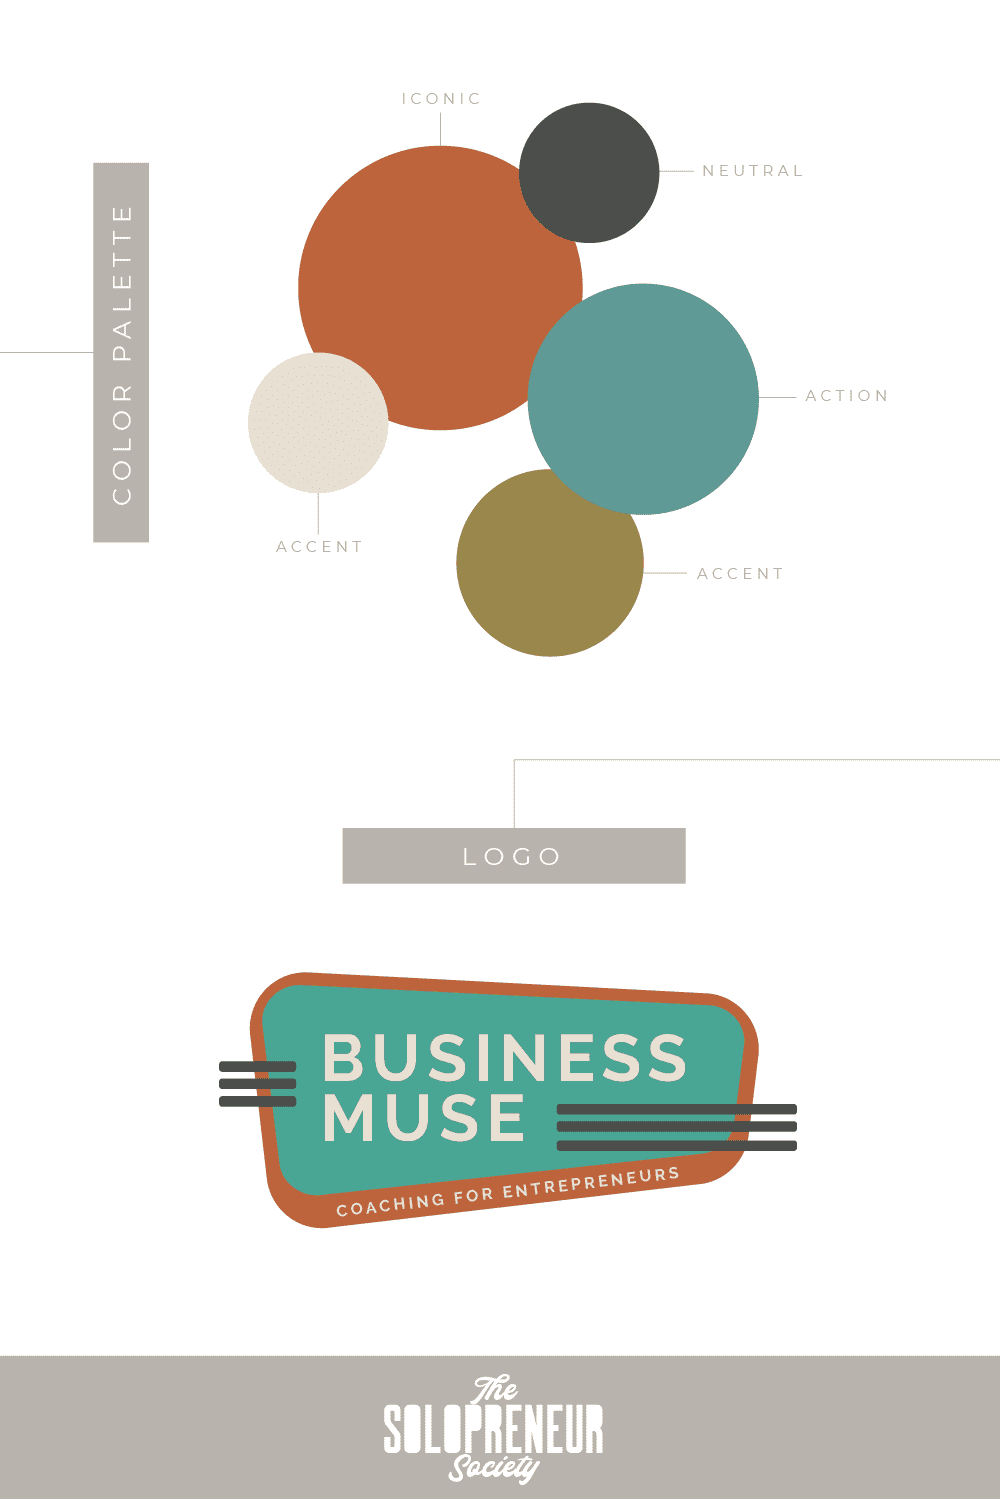 Business Muse Brand Identity Design